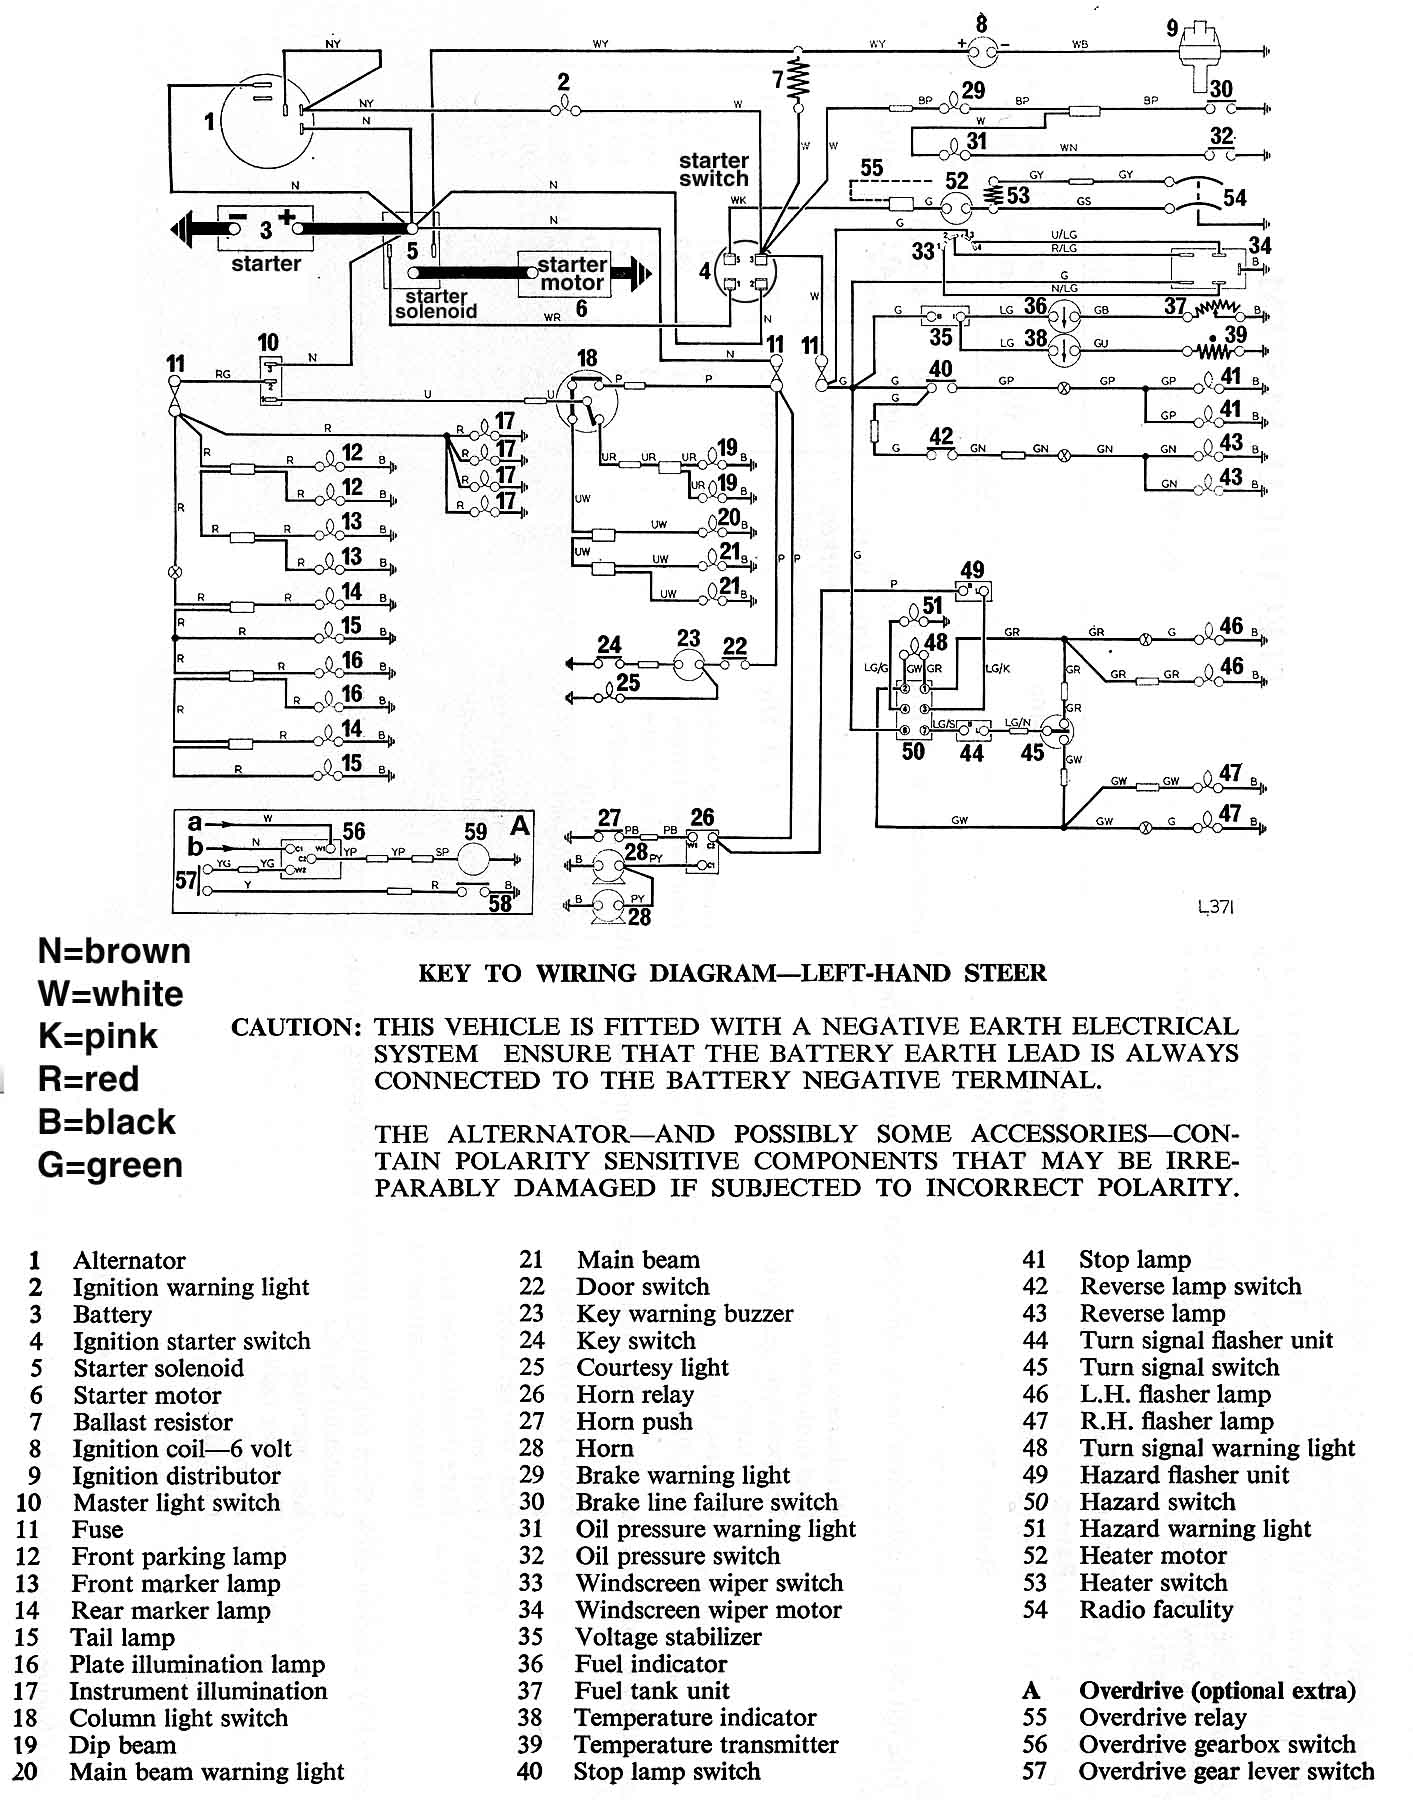 1974 Jeep Cj5 Wiring Diagram Data Ford Bronco Alternator Schematic Library 1976